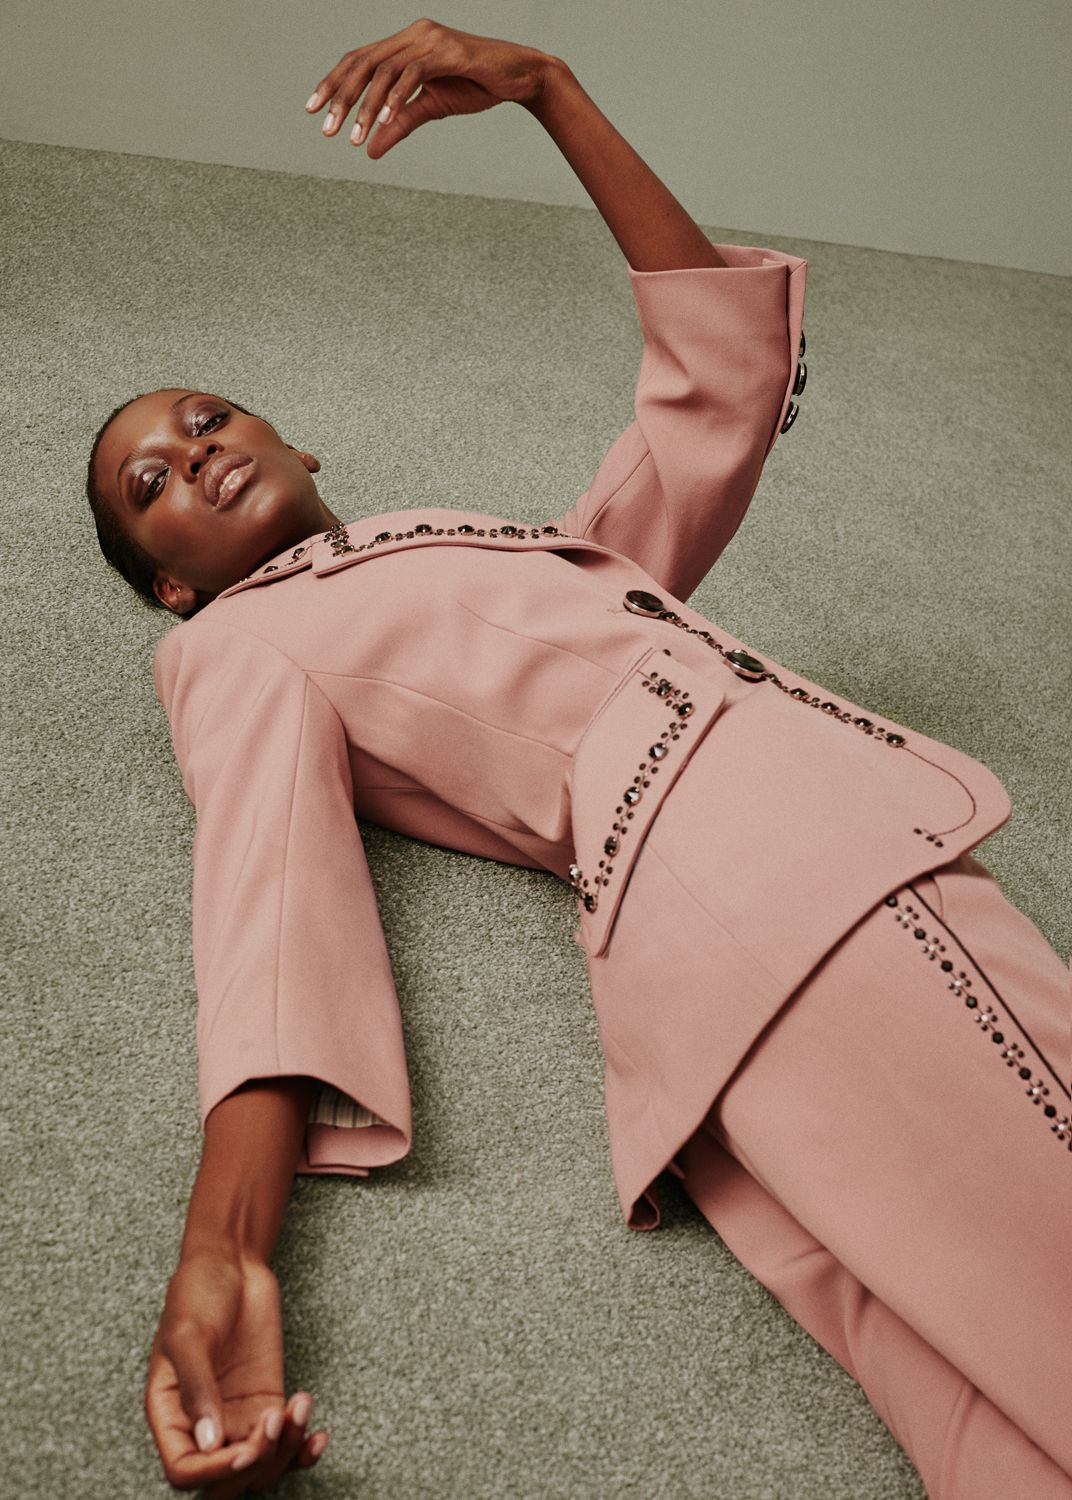 Marc Jacobs Fall '15 Fashion Special by Hedvig Jenning for Hunger Issue 9